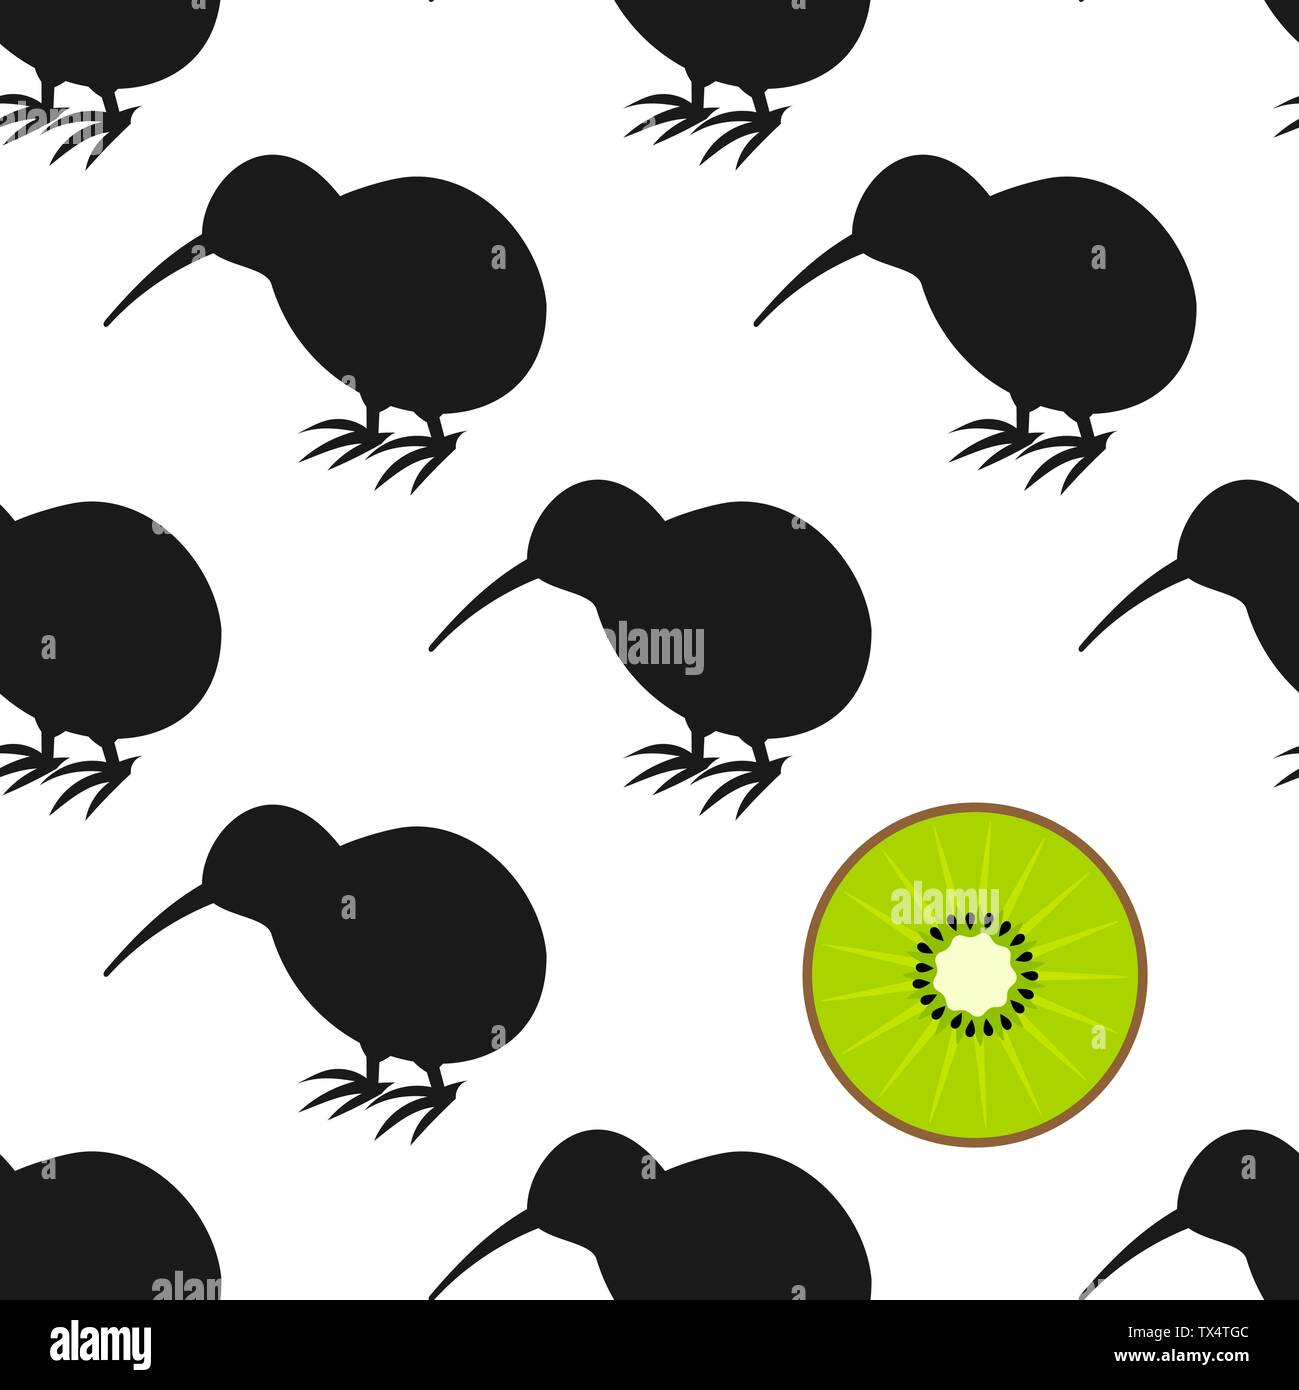 Kiwi birds and fruit seamless pattern. Vector illustration - Stock Image